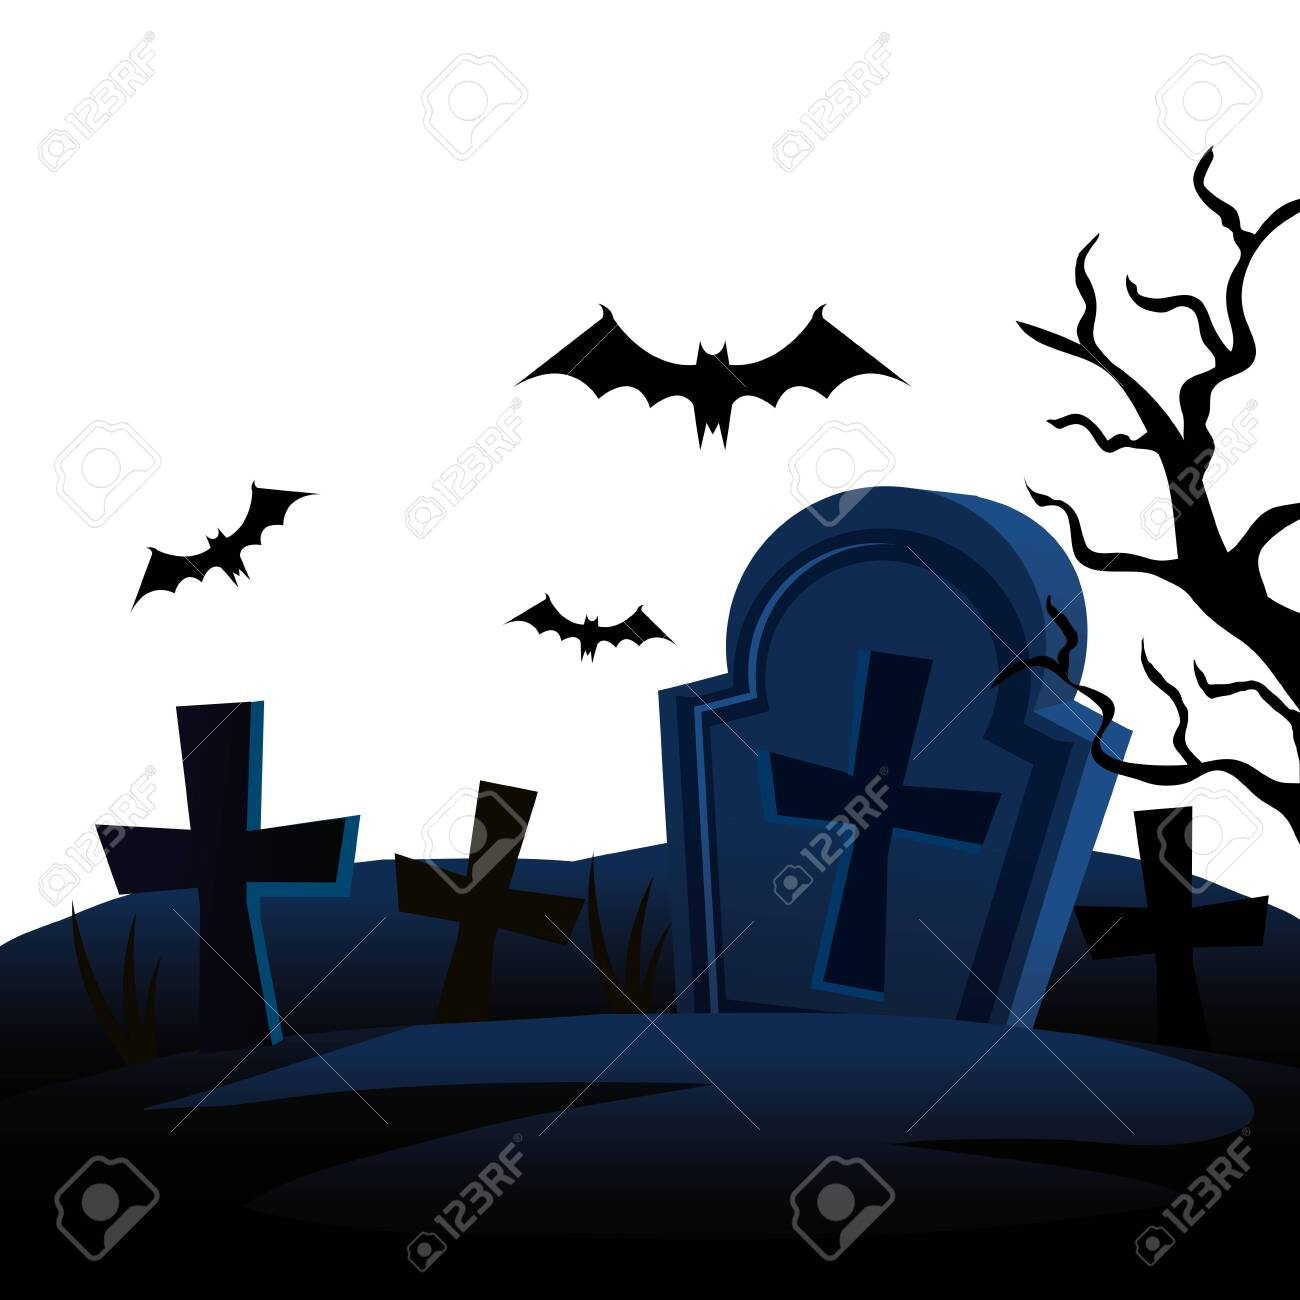 halloween tombs with bats flying vector illustration design - 130515983